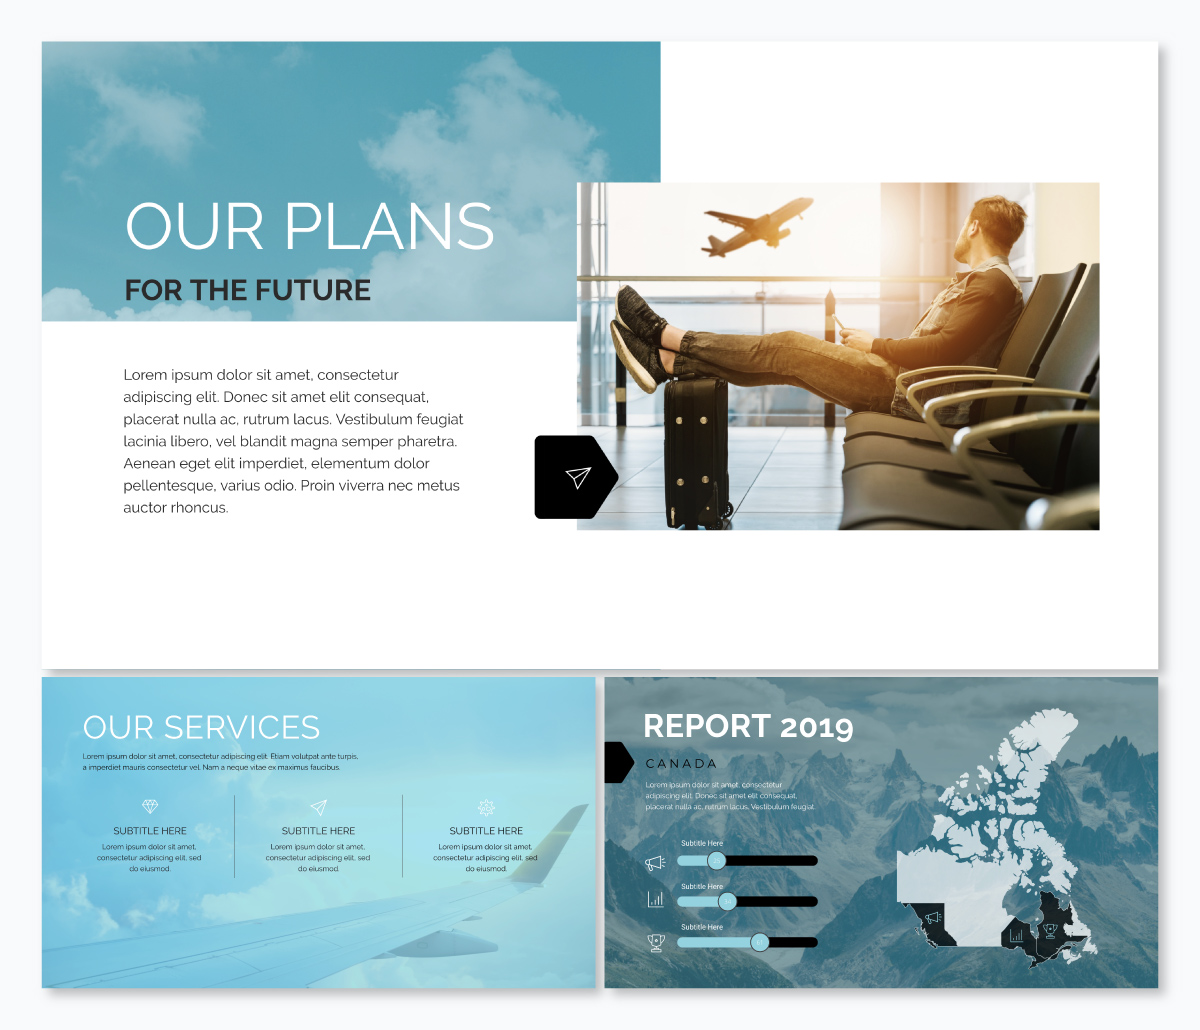 A company profile keynote template available in Visme.